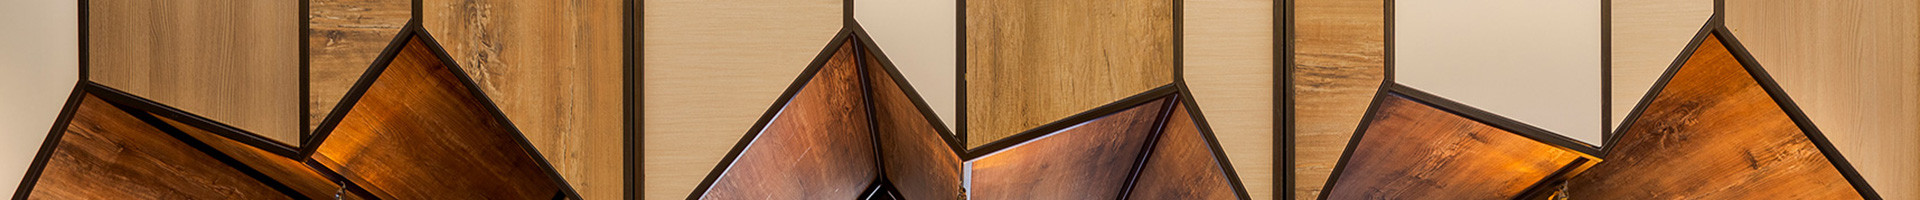 <p>Get inspired and create<br /> with Arpa high pressure laminates</p>